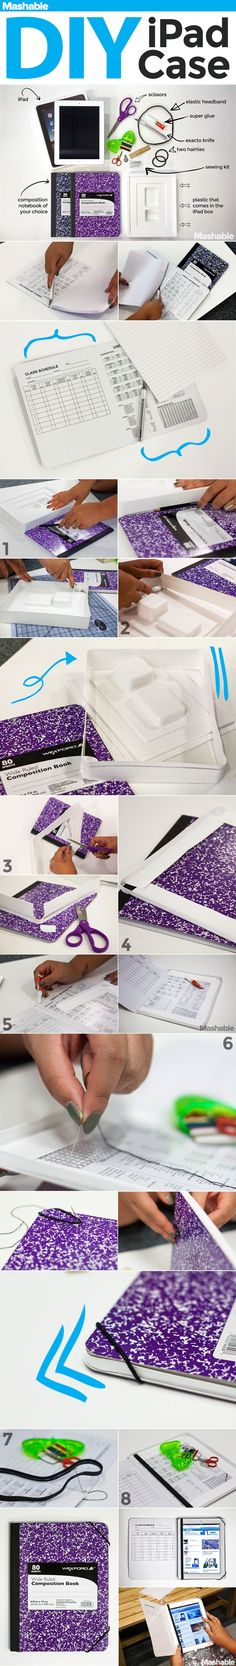 DIY Ipad Case diy craft crafts craft ideas easy crafts diy ideas diy crafts easy diy